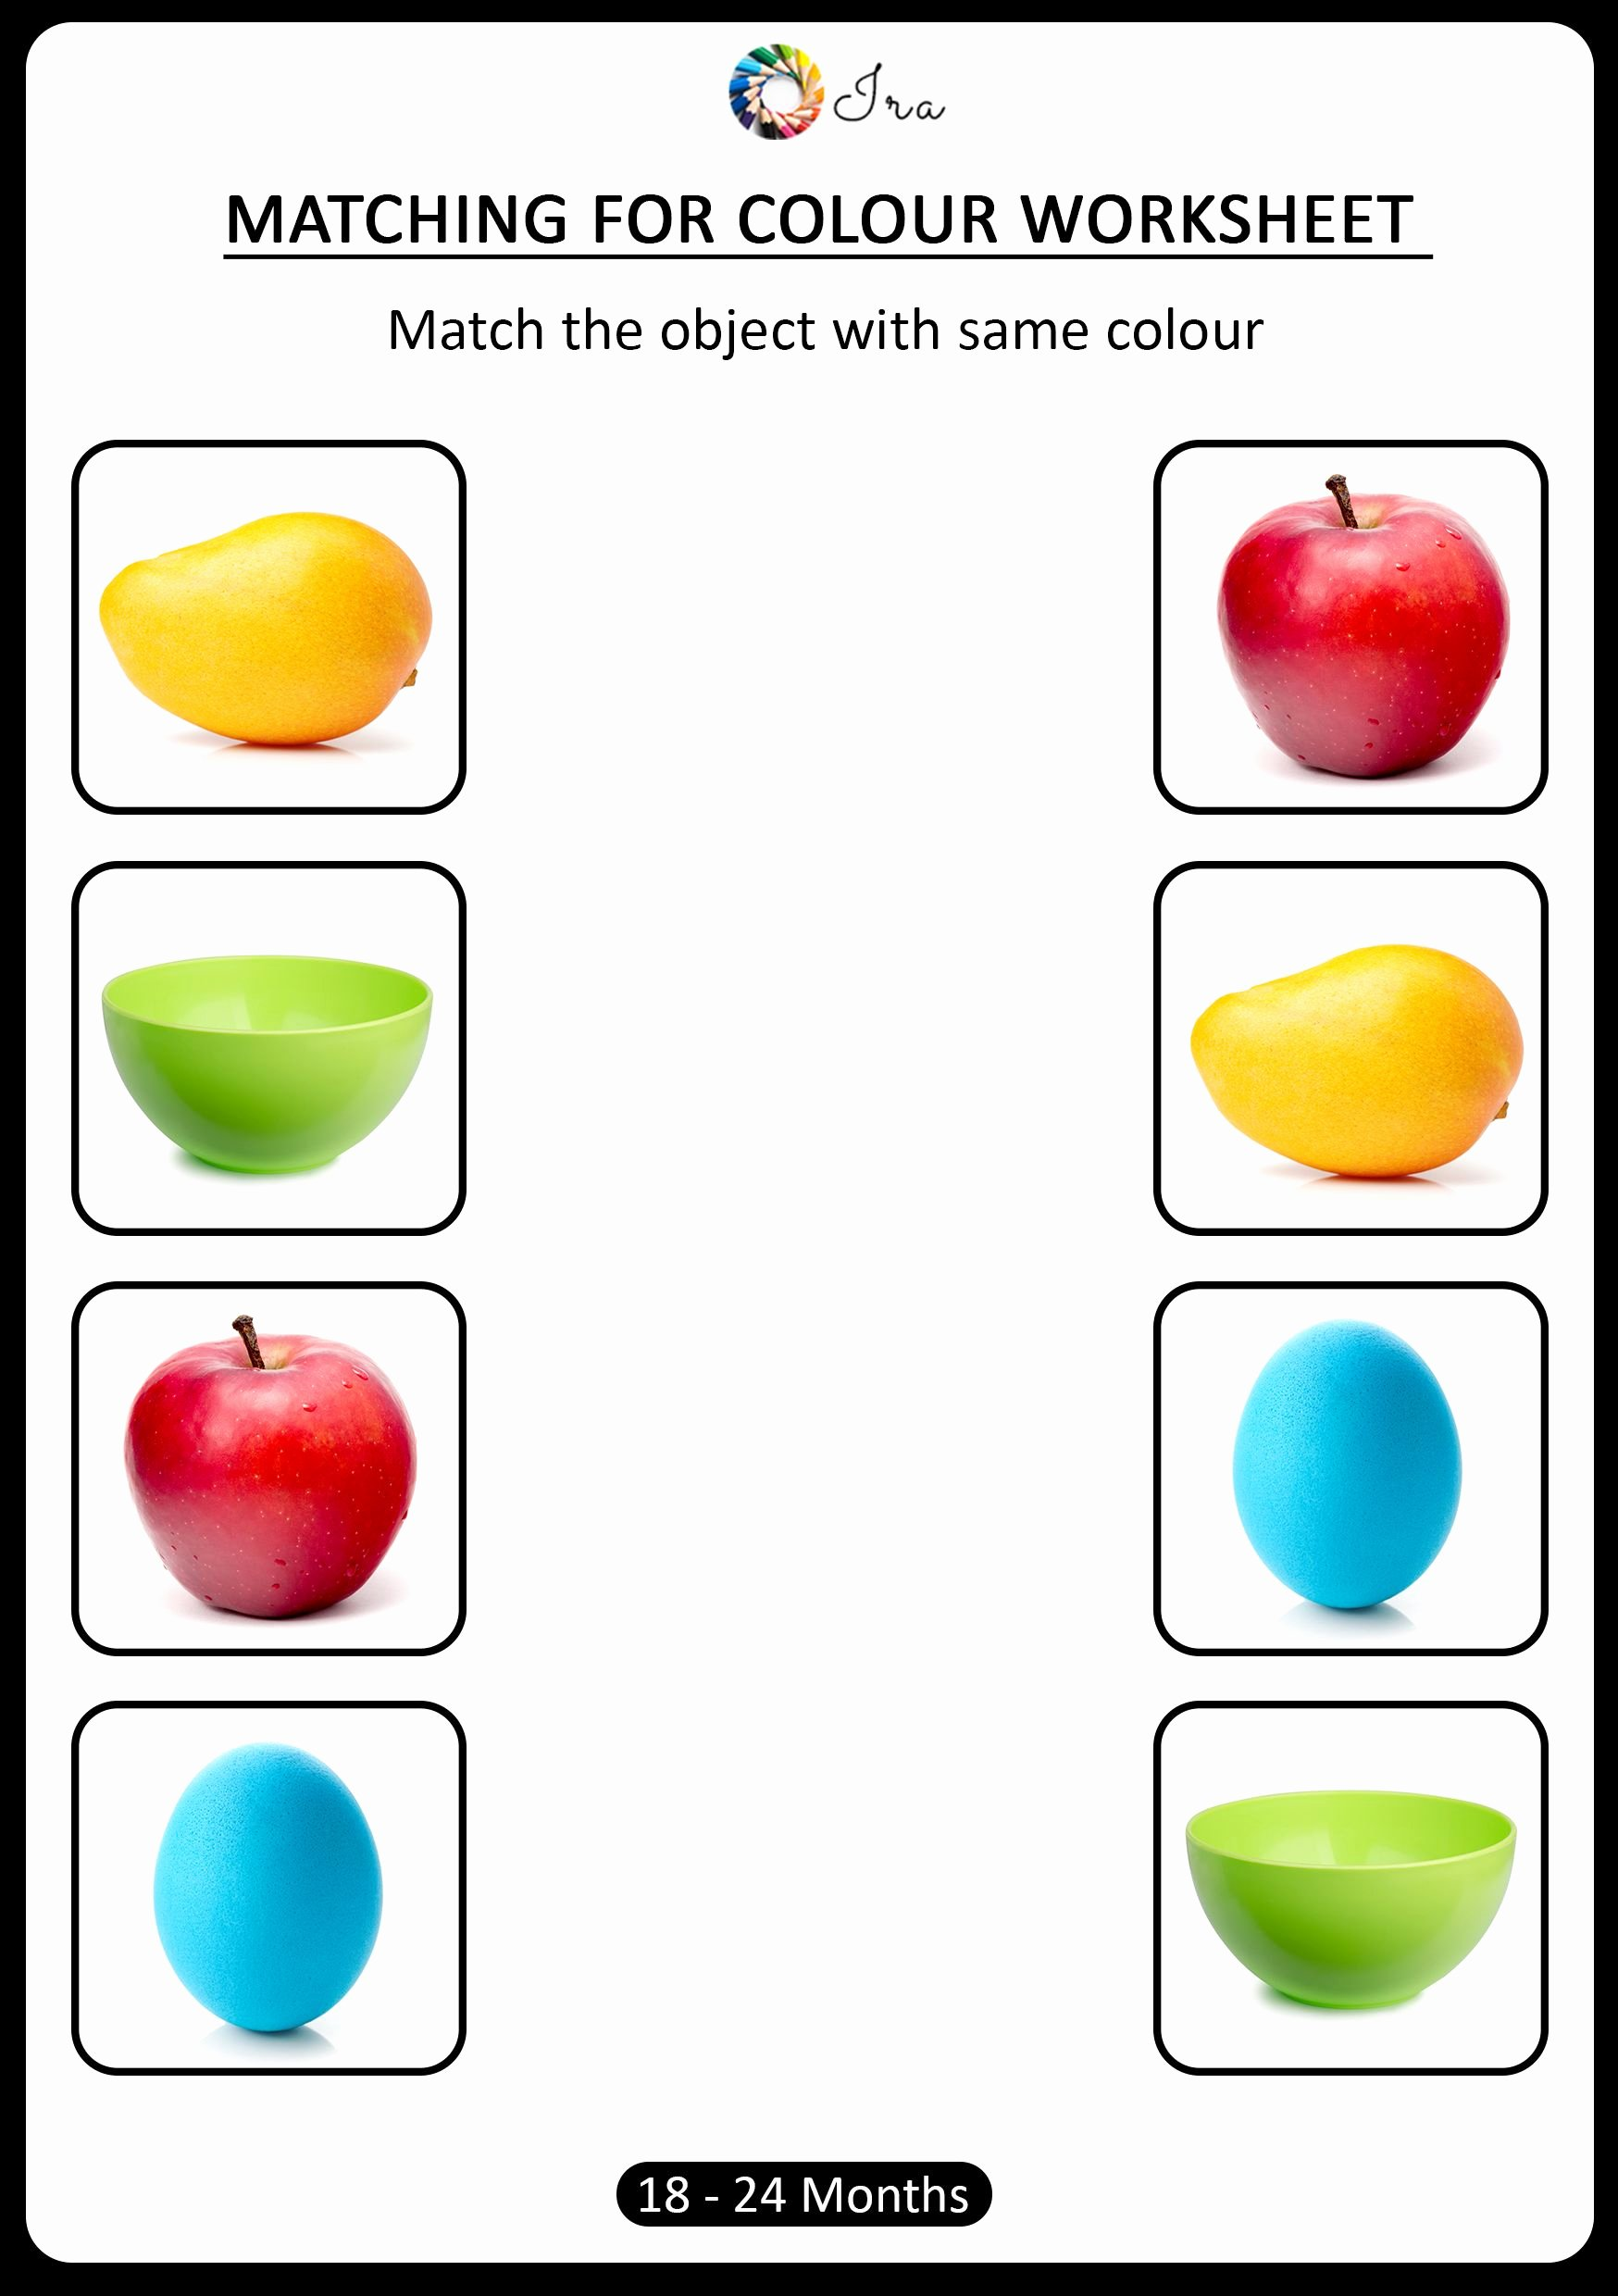 Colour Matching Worksheets for Preschoolers Beautiful Pin On 2019